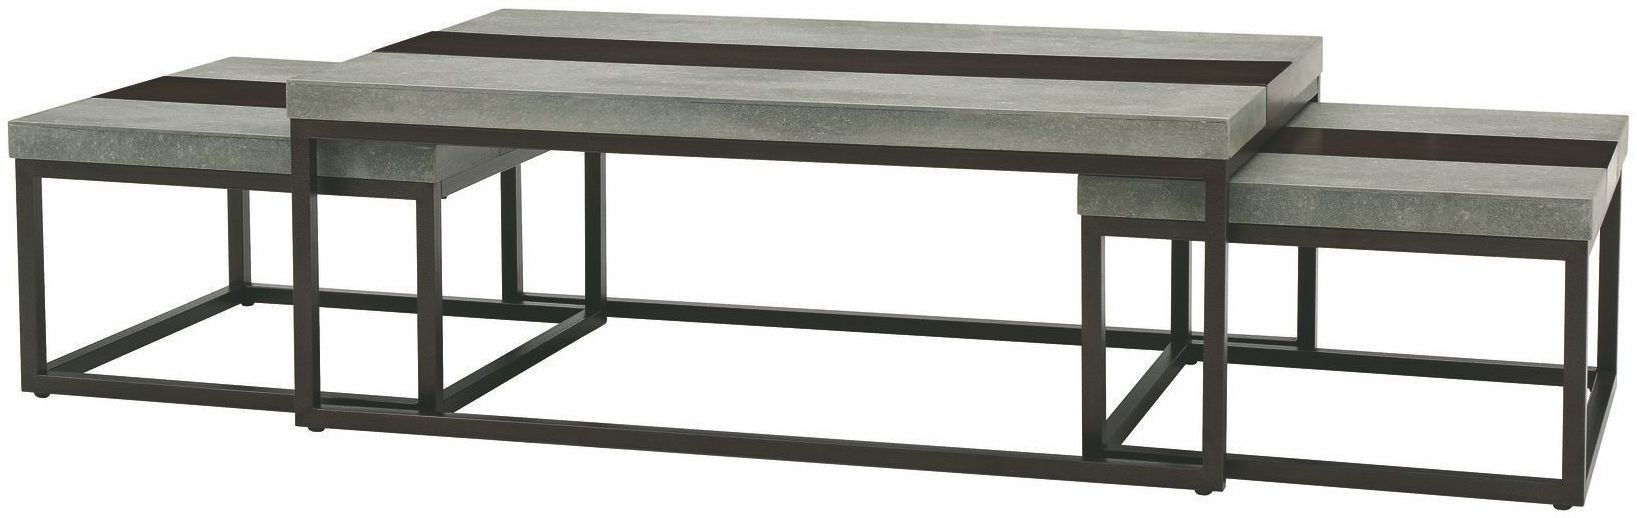 Stoneworks Merlot Natural Stone Cocktail Table With 2